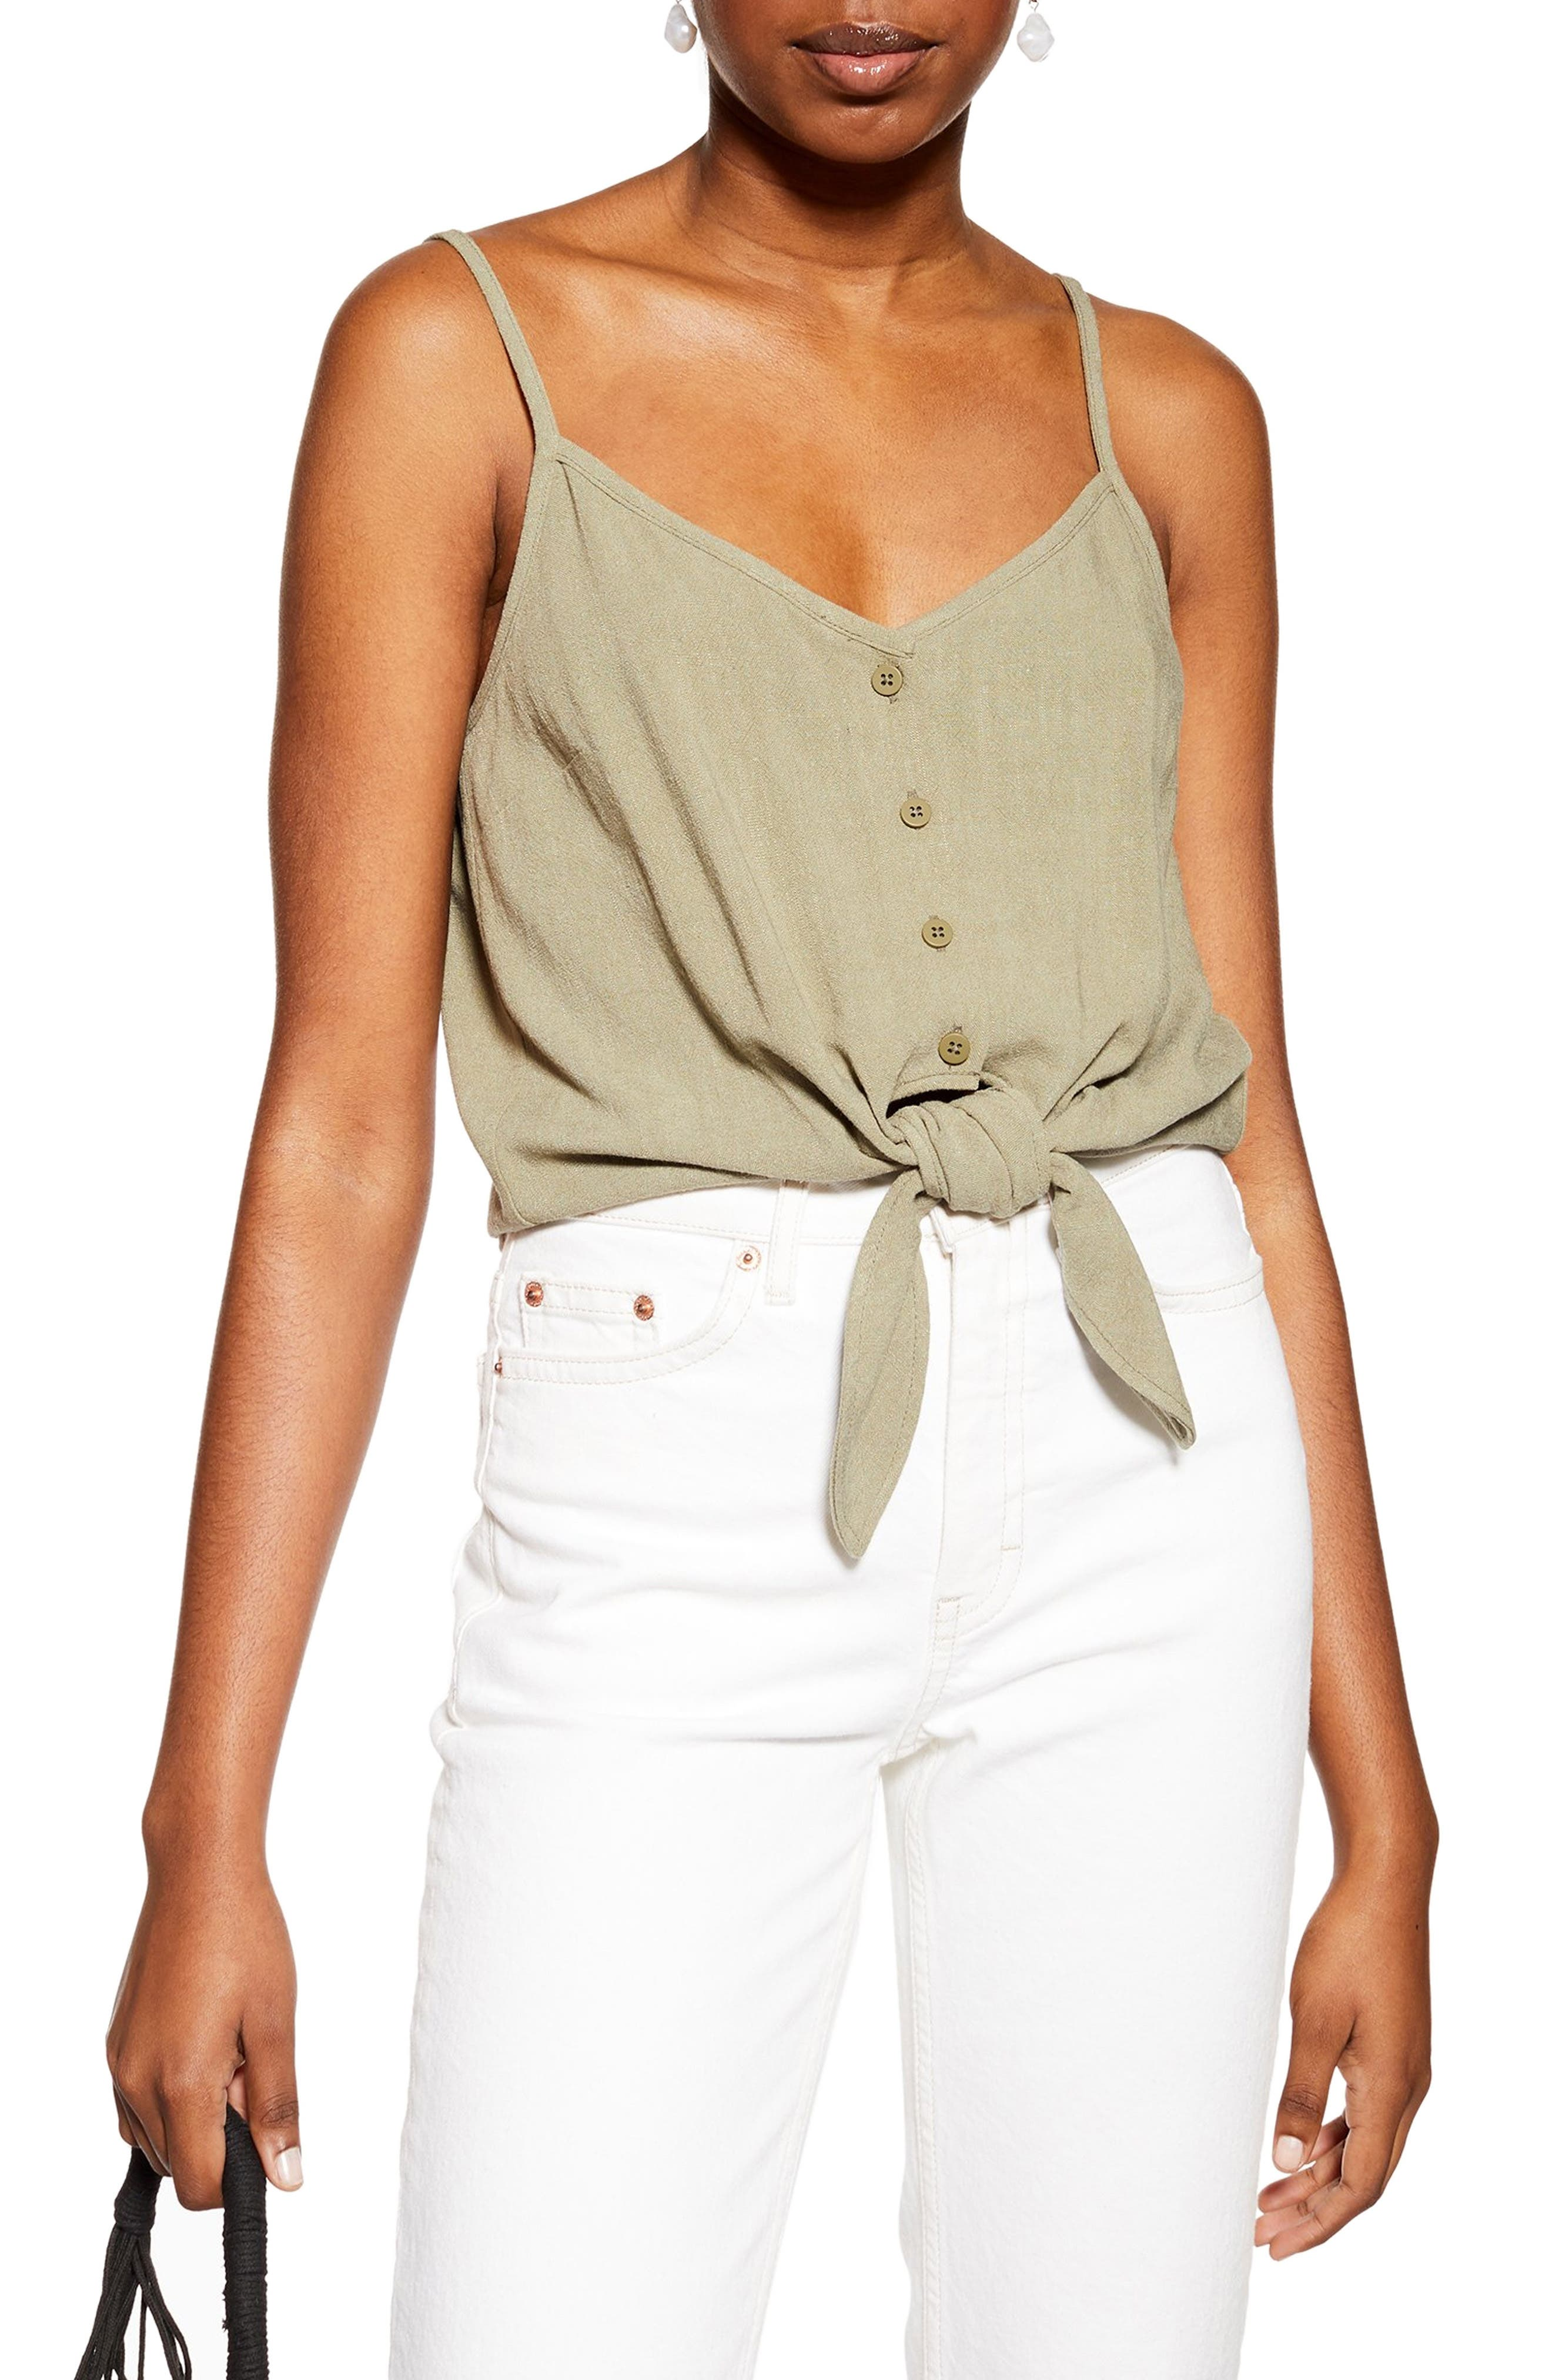 Topshop Polly Tie Front Camisole, US (fits like 2-4) - Green